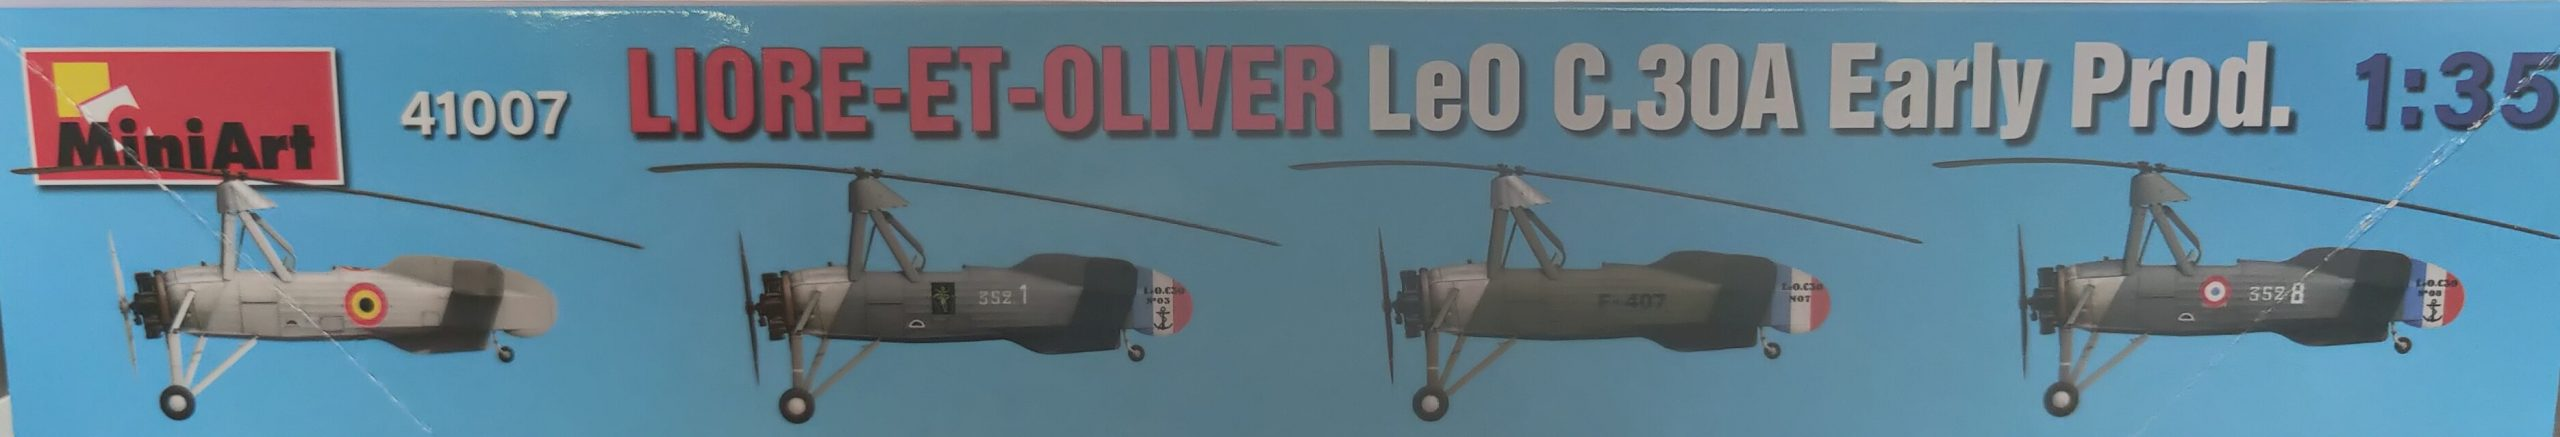 MiniartLeoC30A02-scaled Liore-et-Oliver LeO C.30A Early Prod. in 1:35 von Miniart # 41007